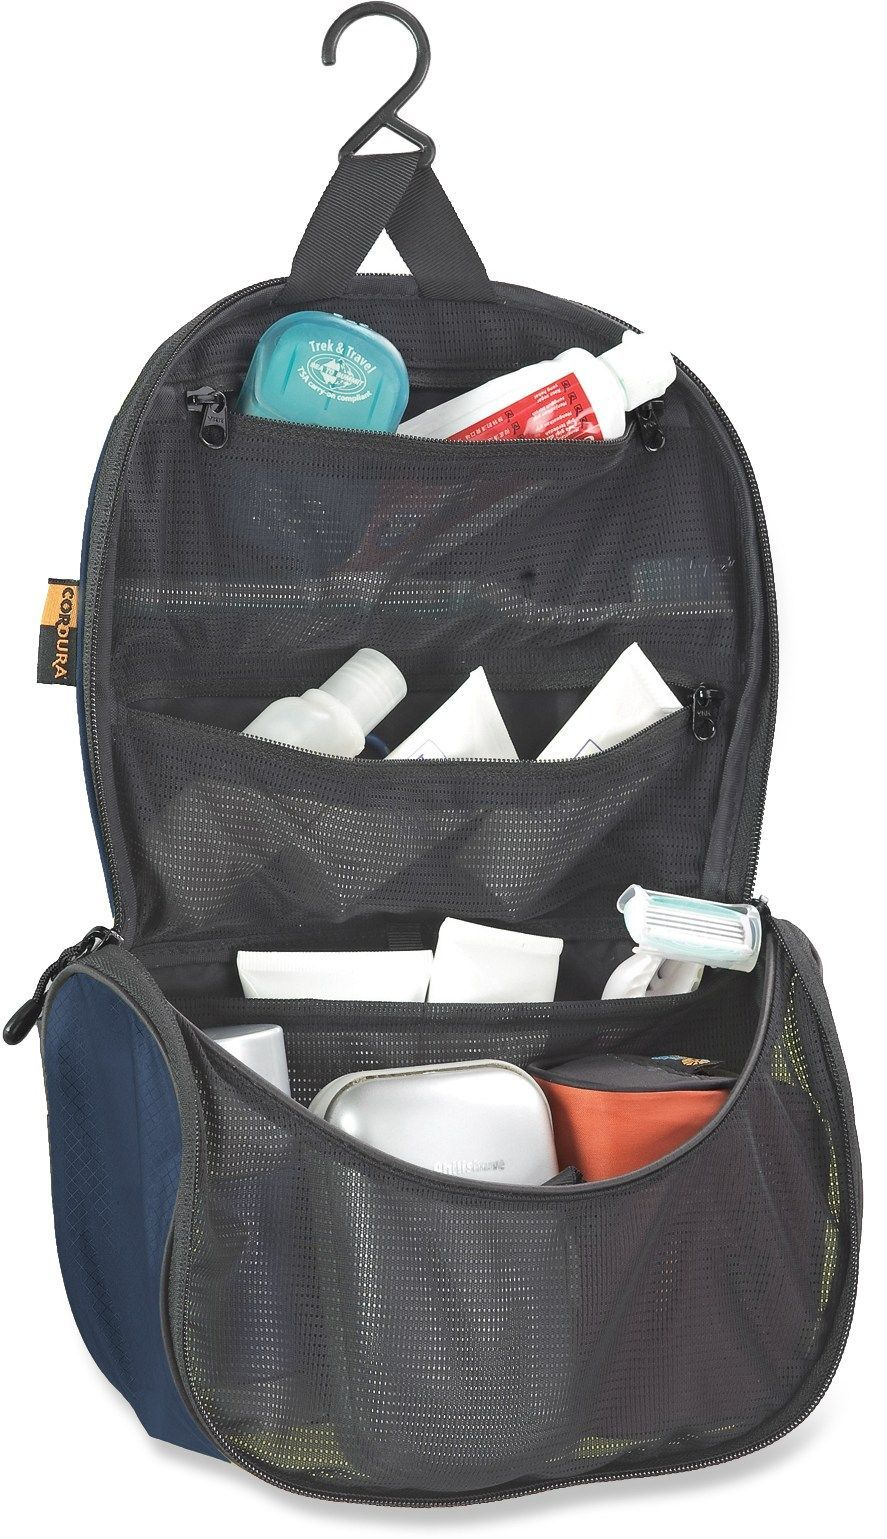 Sea to Summit Travelling Light Hanging Toiletry Bag - Small - Free Shipping  at REI. e8940ab5f19ad